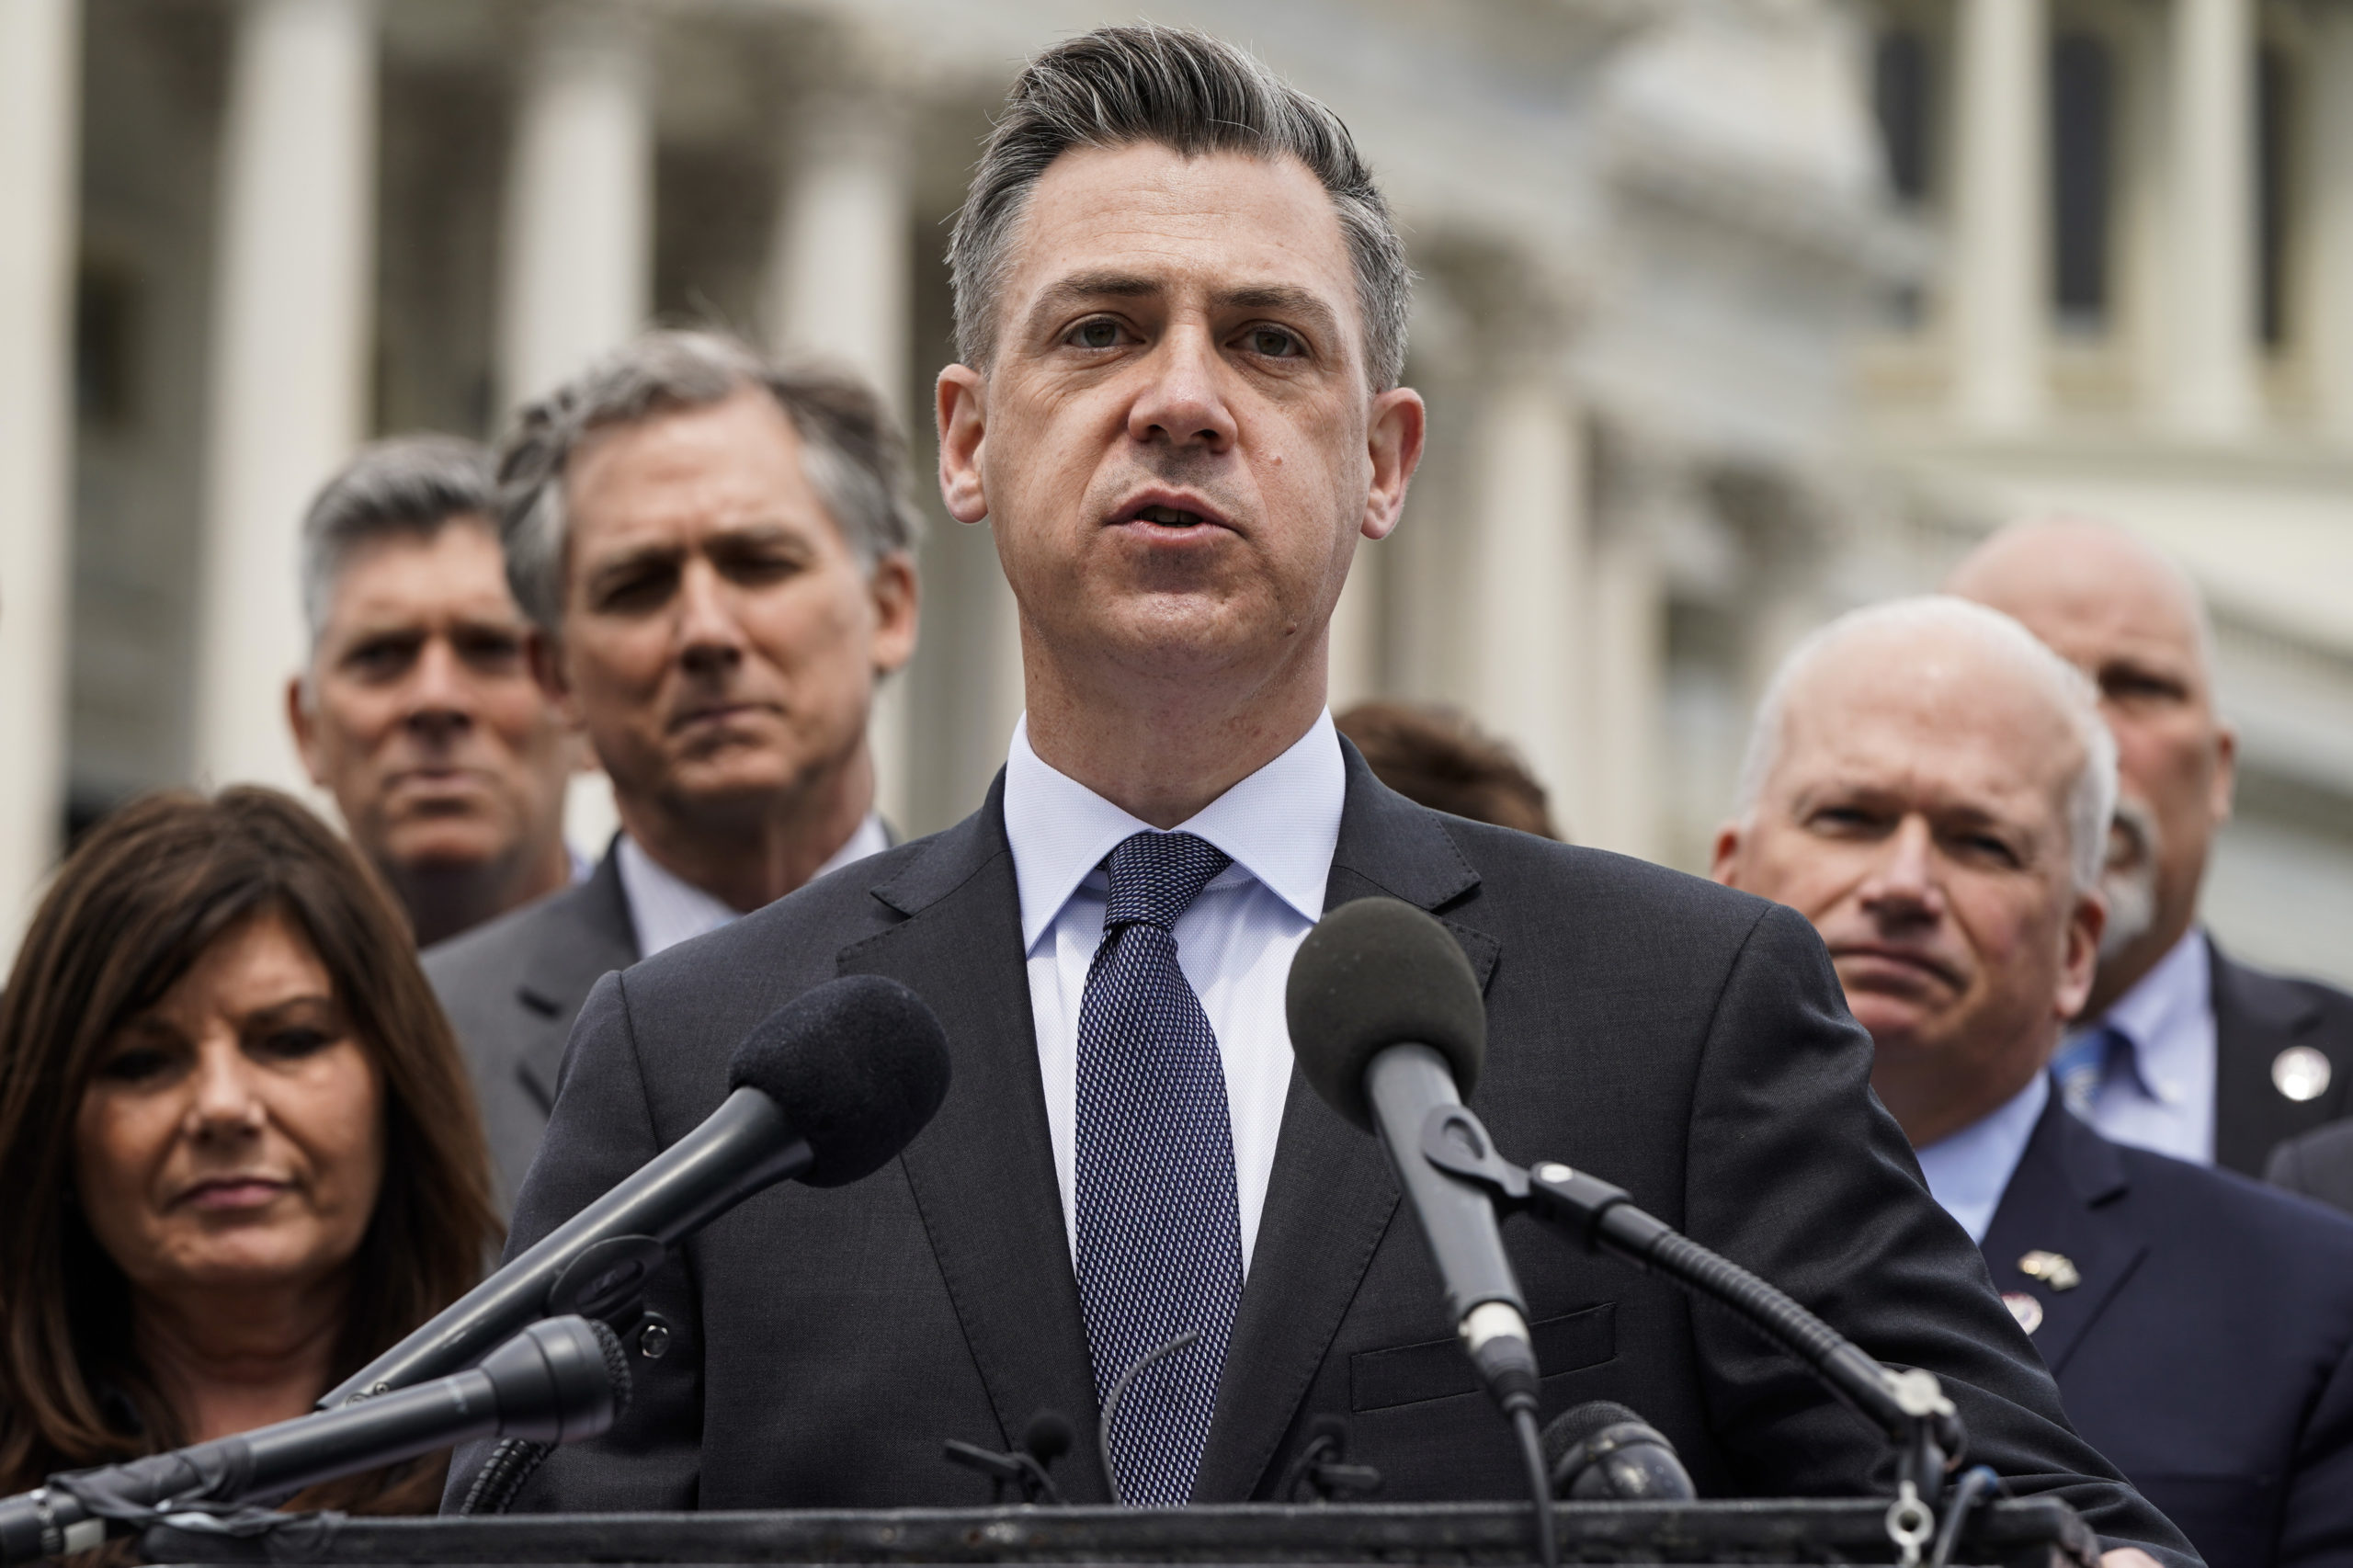 WASHINGTON, DC - APRIL 21: Rep. Jim Banks (R-IN) speaks to the media with members of the Republican Study Committee about Iran on April 21, 2021 in Washington, DC. The group has proposed legislation that would expand sanctions on Iran and aim to prevent the U.S. reentering the Iran deal. (Photo by Joshua Roberts/Getty Images)